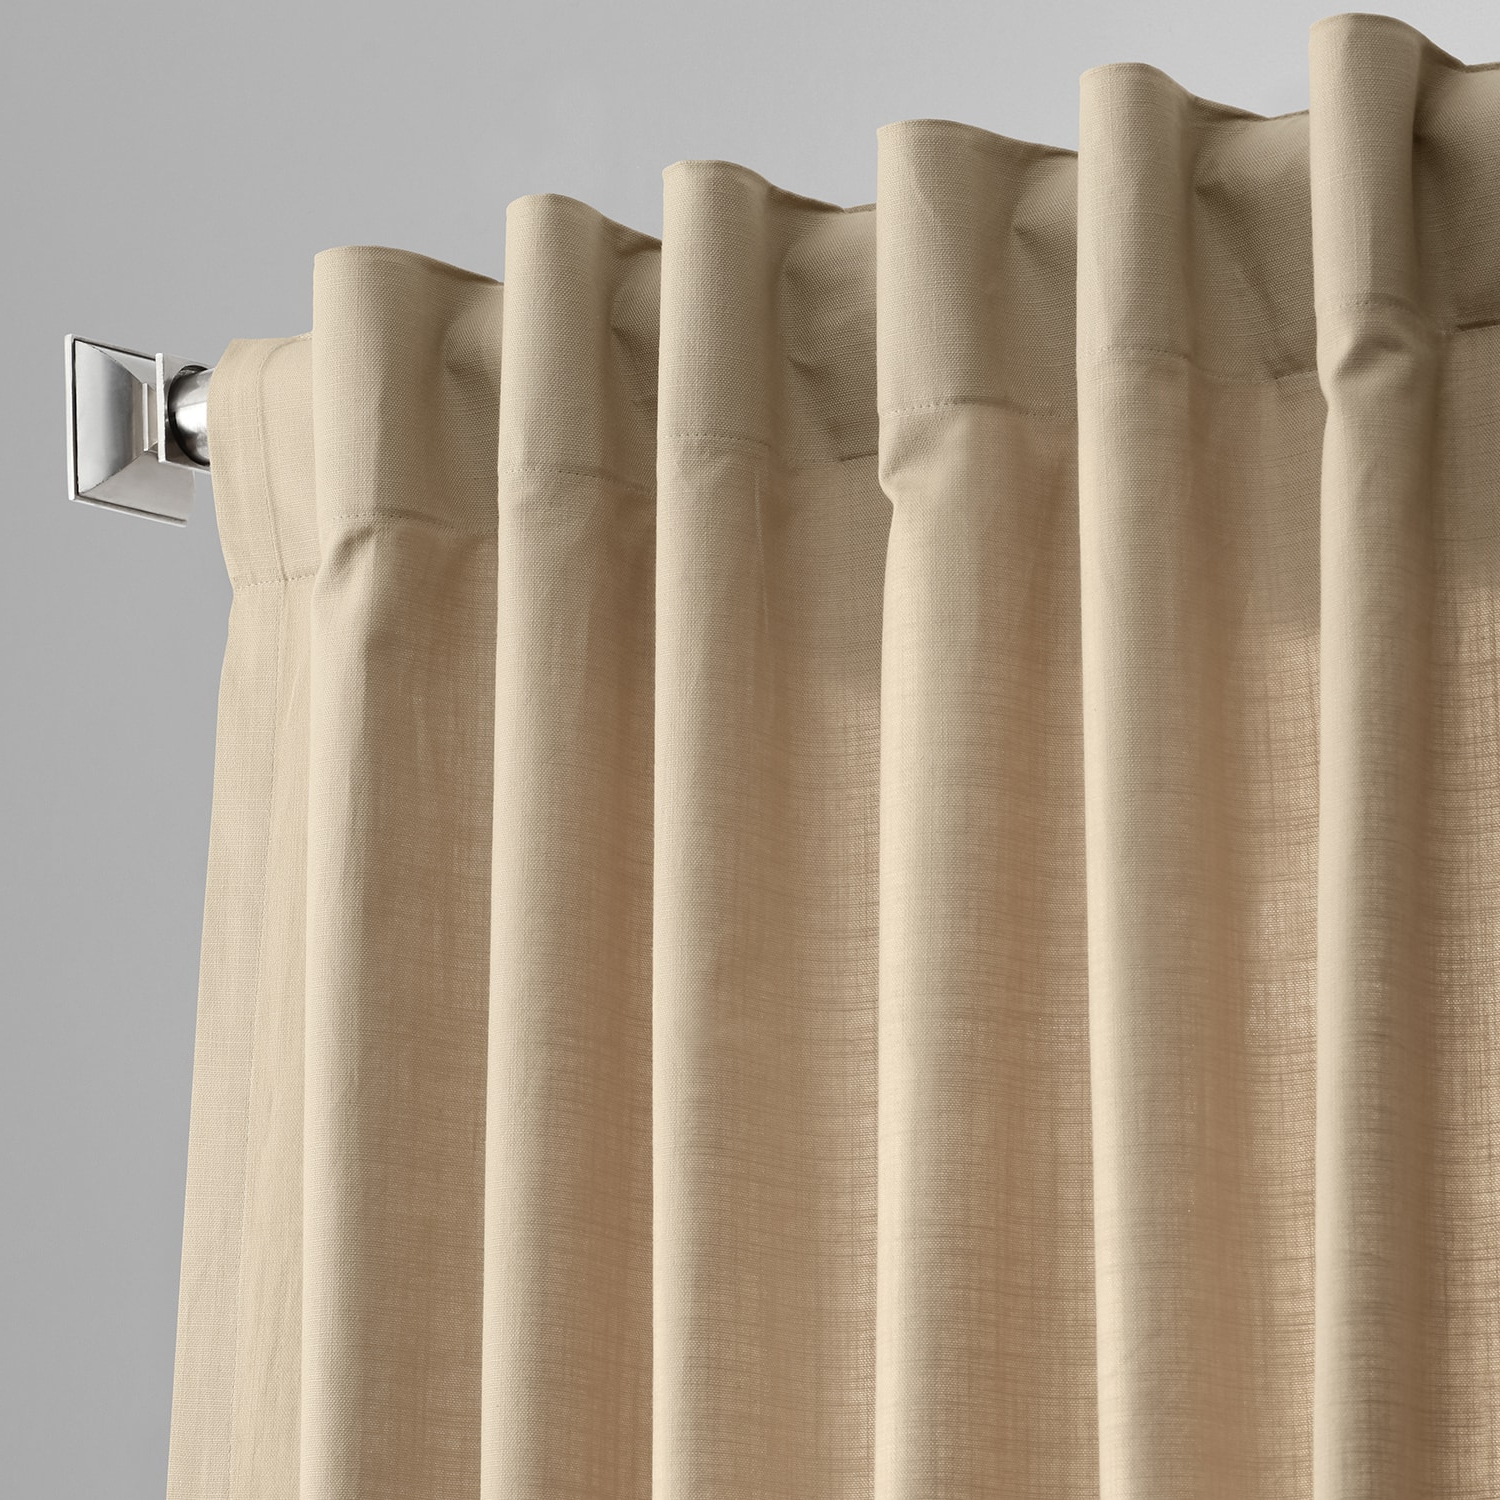 Solid Country Cotton Linen Weave Curtain Panels With Regard To Widely Used Details About Country Cotton Linen Weave Curtains (Sold Per Panel) (View 19 of 20)